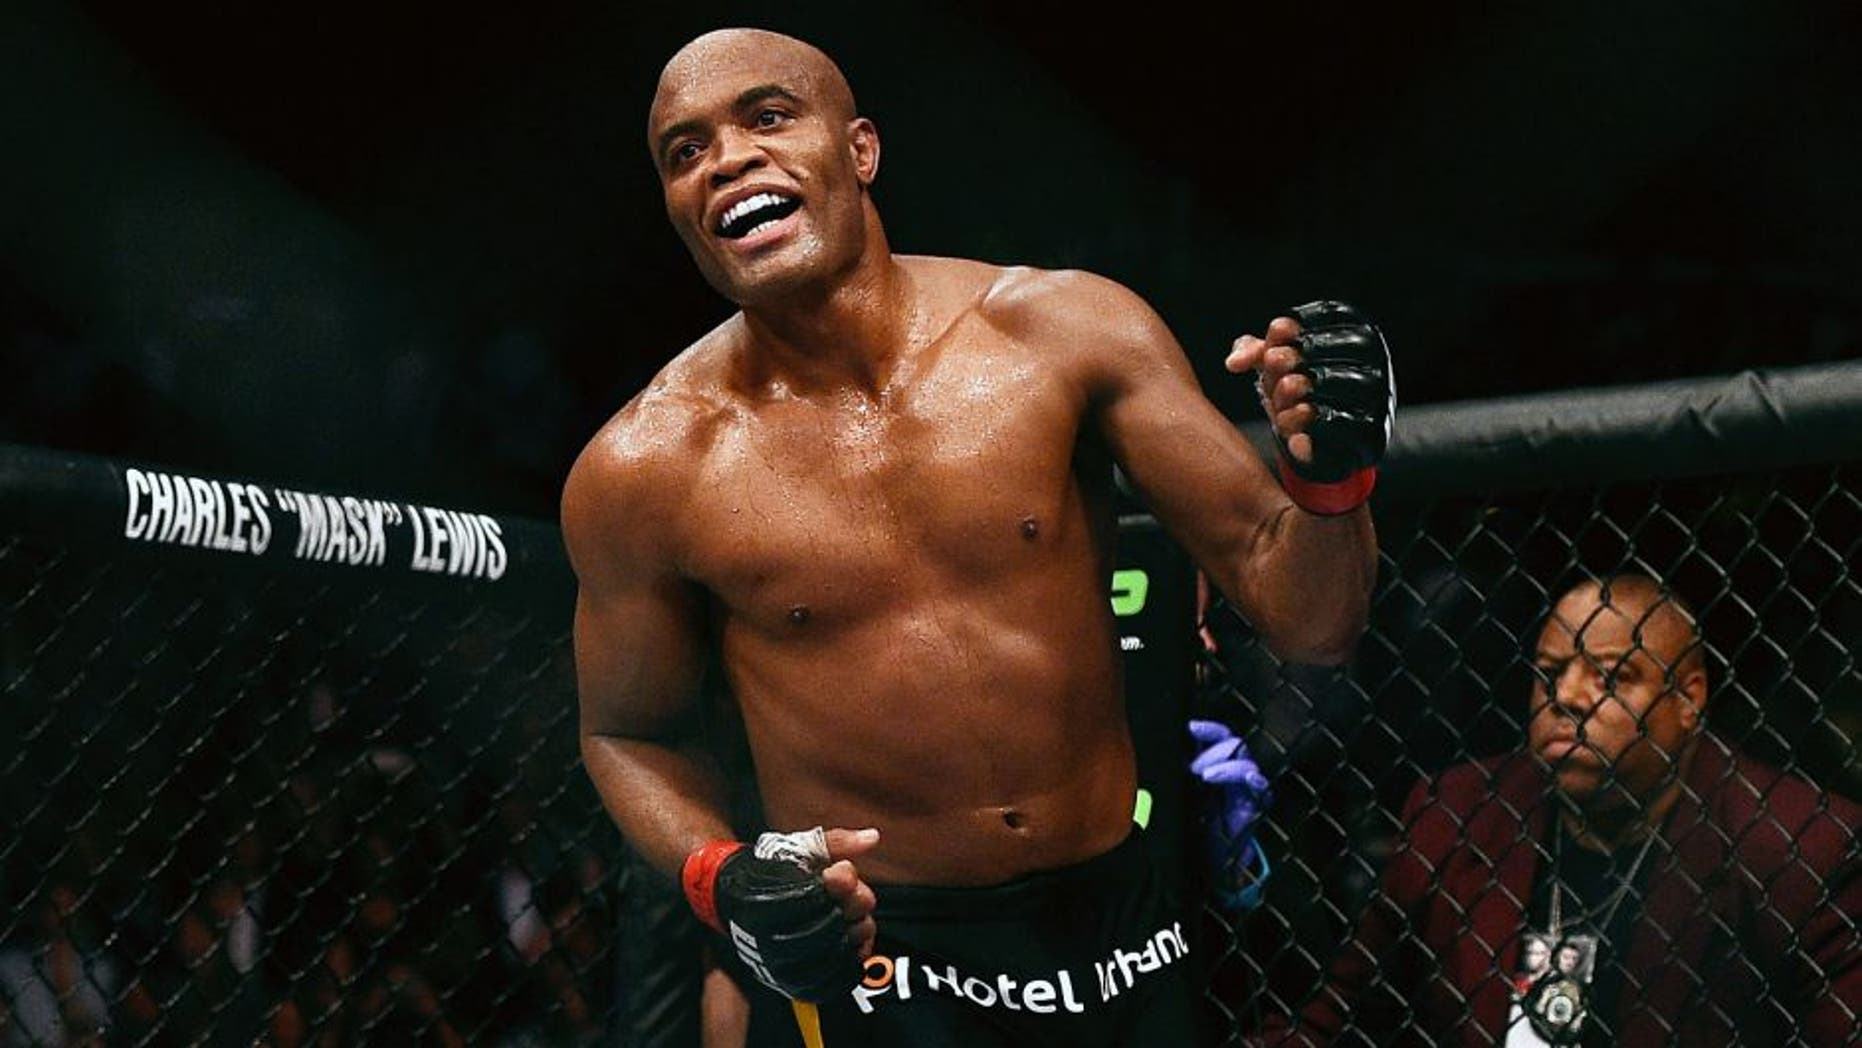 LAS VEGAS, NV - JANUARY 31: Anderson Silva reacts to his win over Nick Diaz in their middleweight bout during the UFC 183 event at the MGM Grand Garden Arena on January 31, 2015 in Las Vegas, Nevada. (Photo by Jeff Bottari/Zuffa LLC/Zuffa LLC via Getty Images)